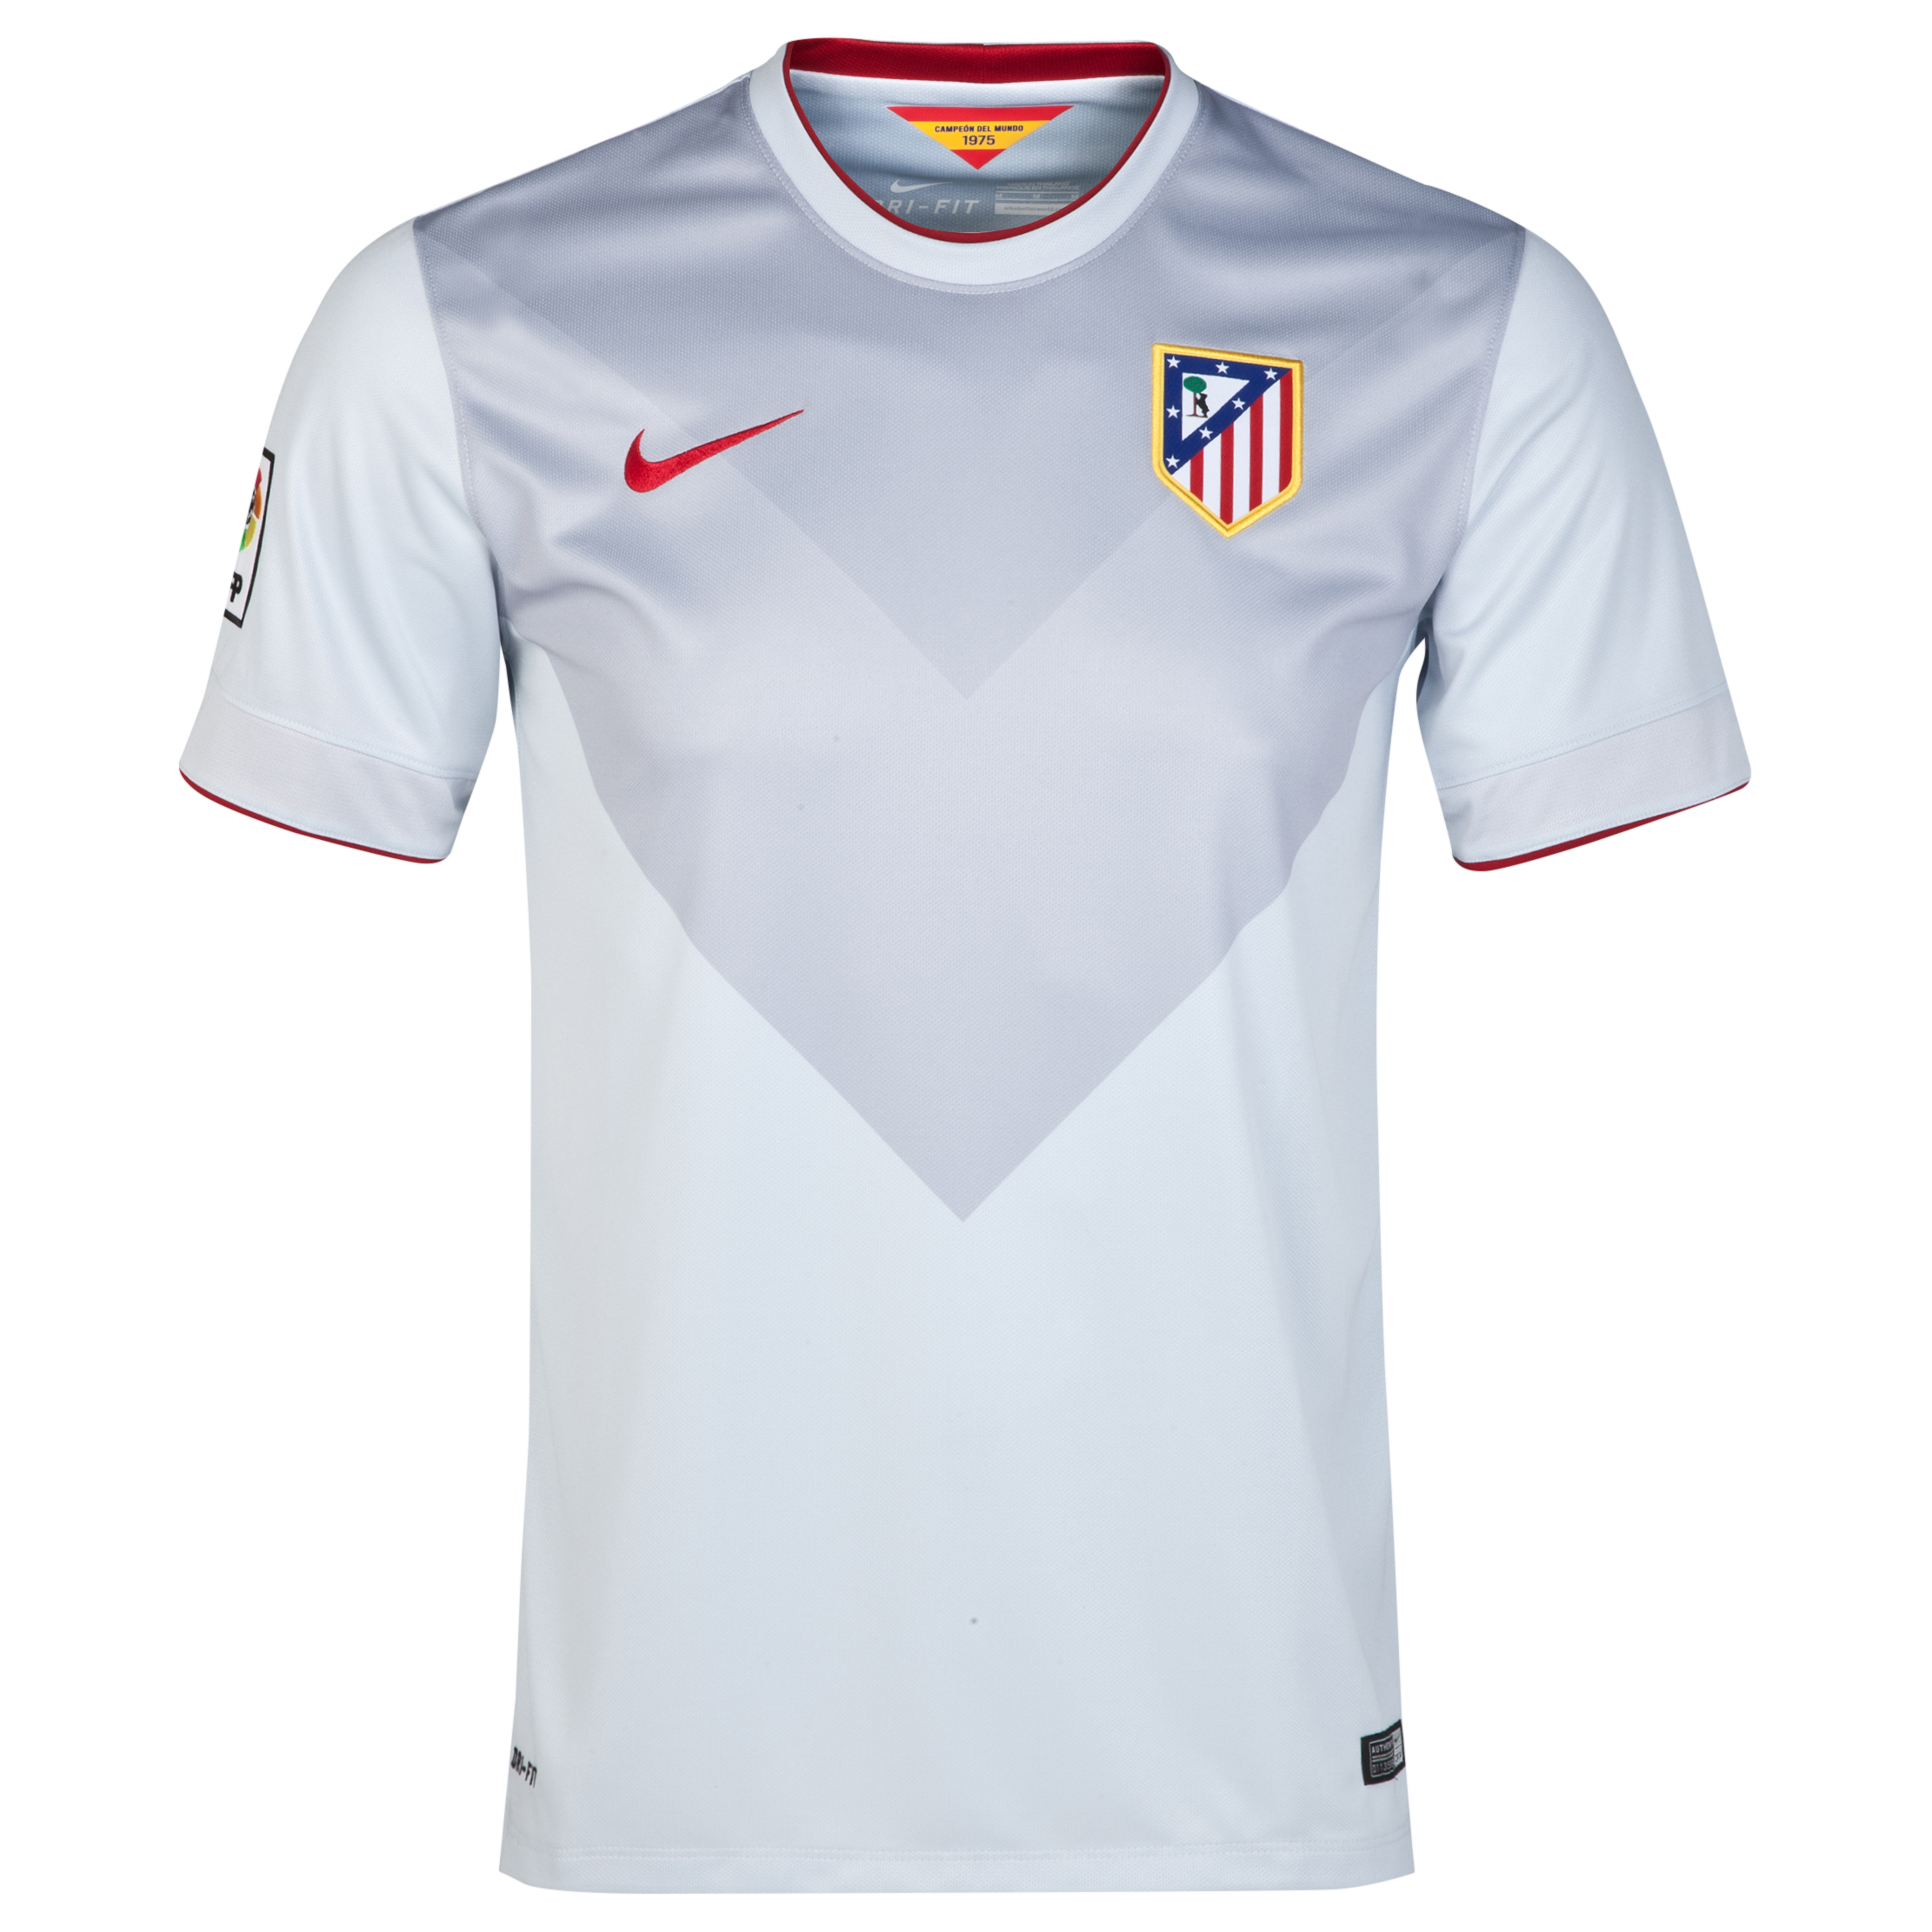 Atletico Madrid Away Shirt 2014/15 Grey